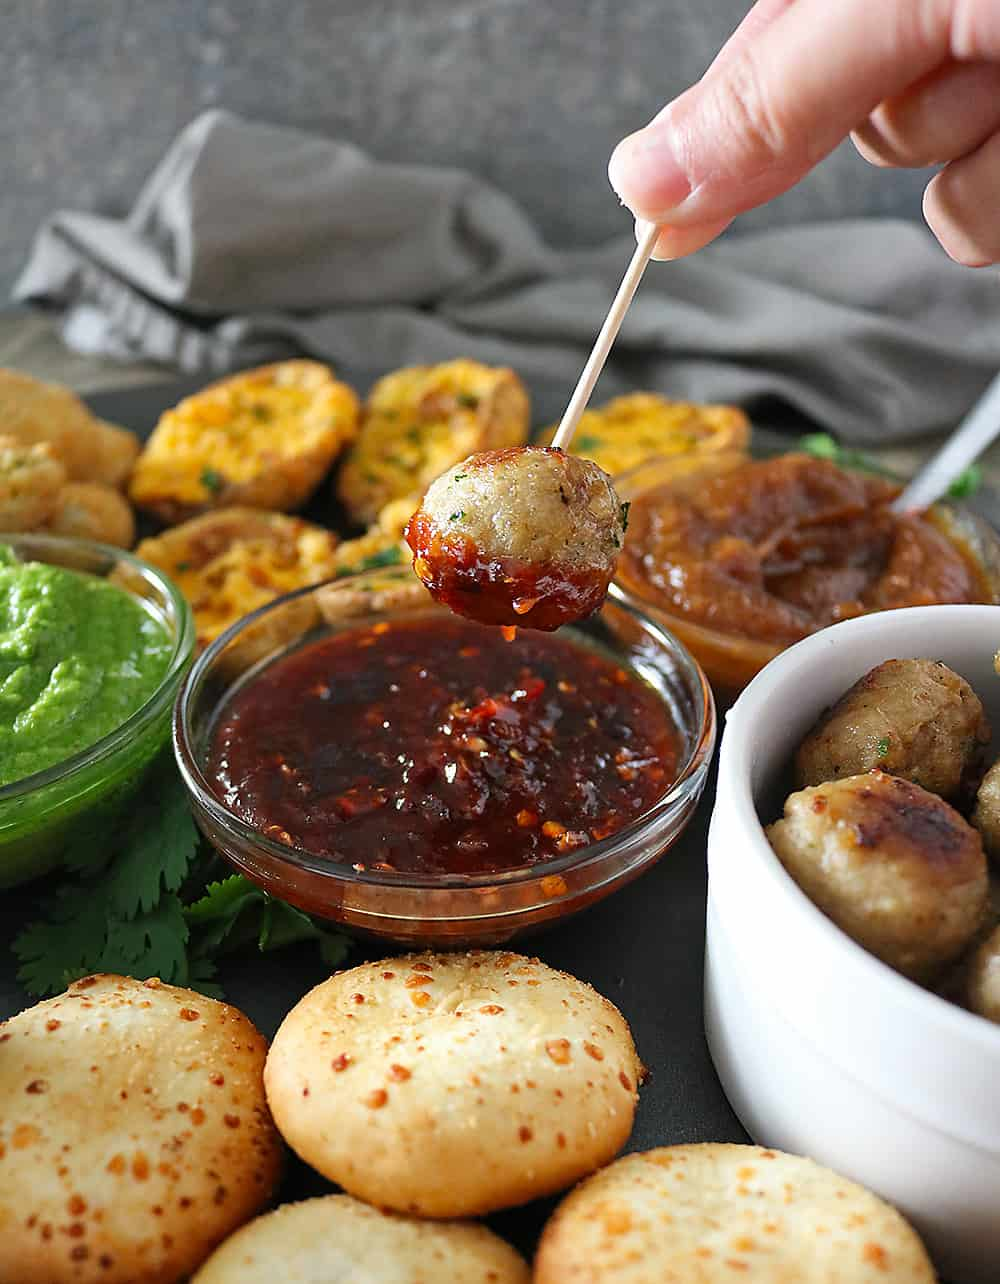 Delicious Spicy Maple- Chili Sauce And FarmRich Meatballs for the Big Game!